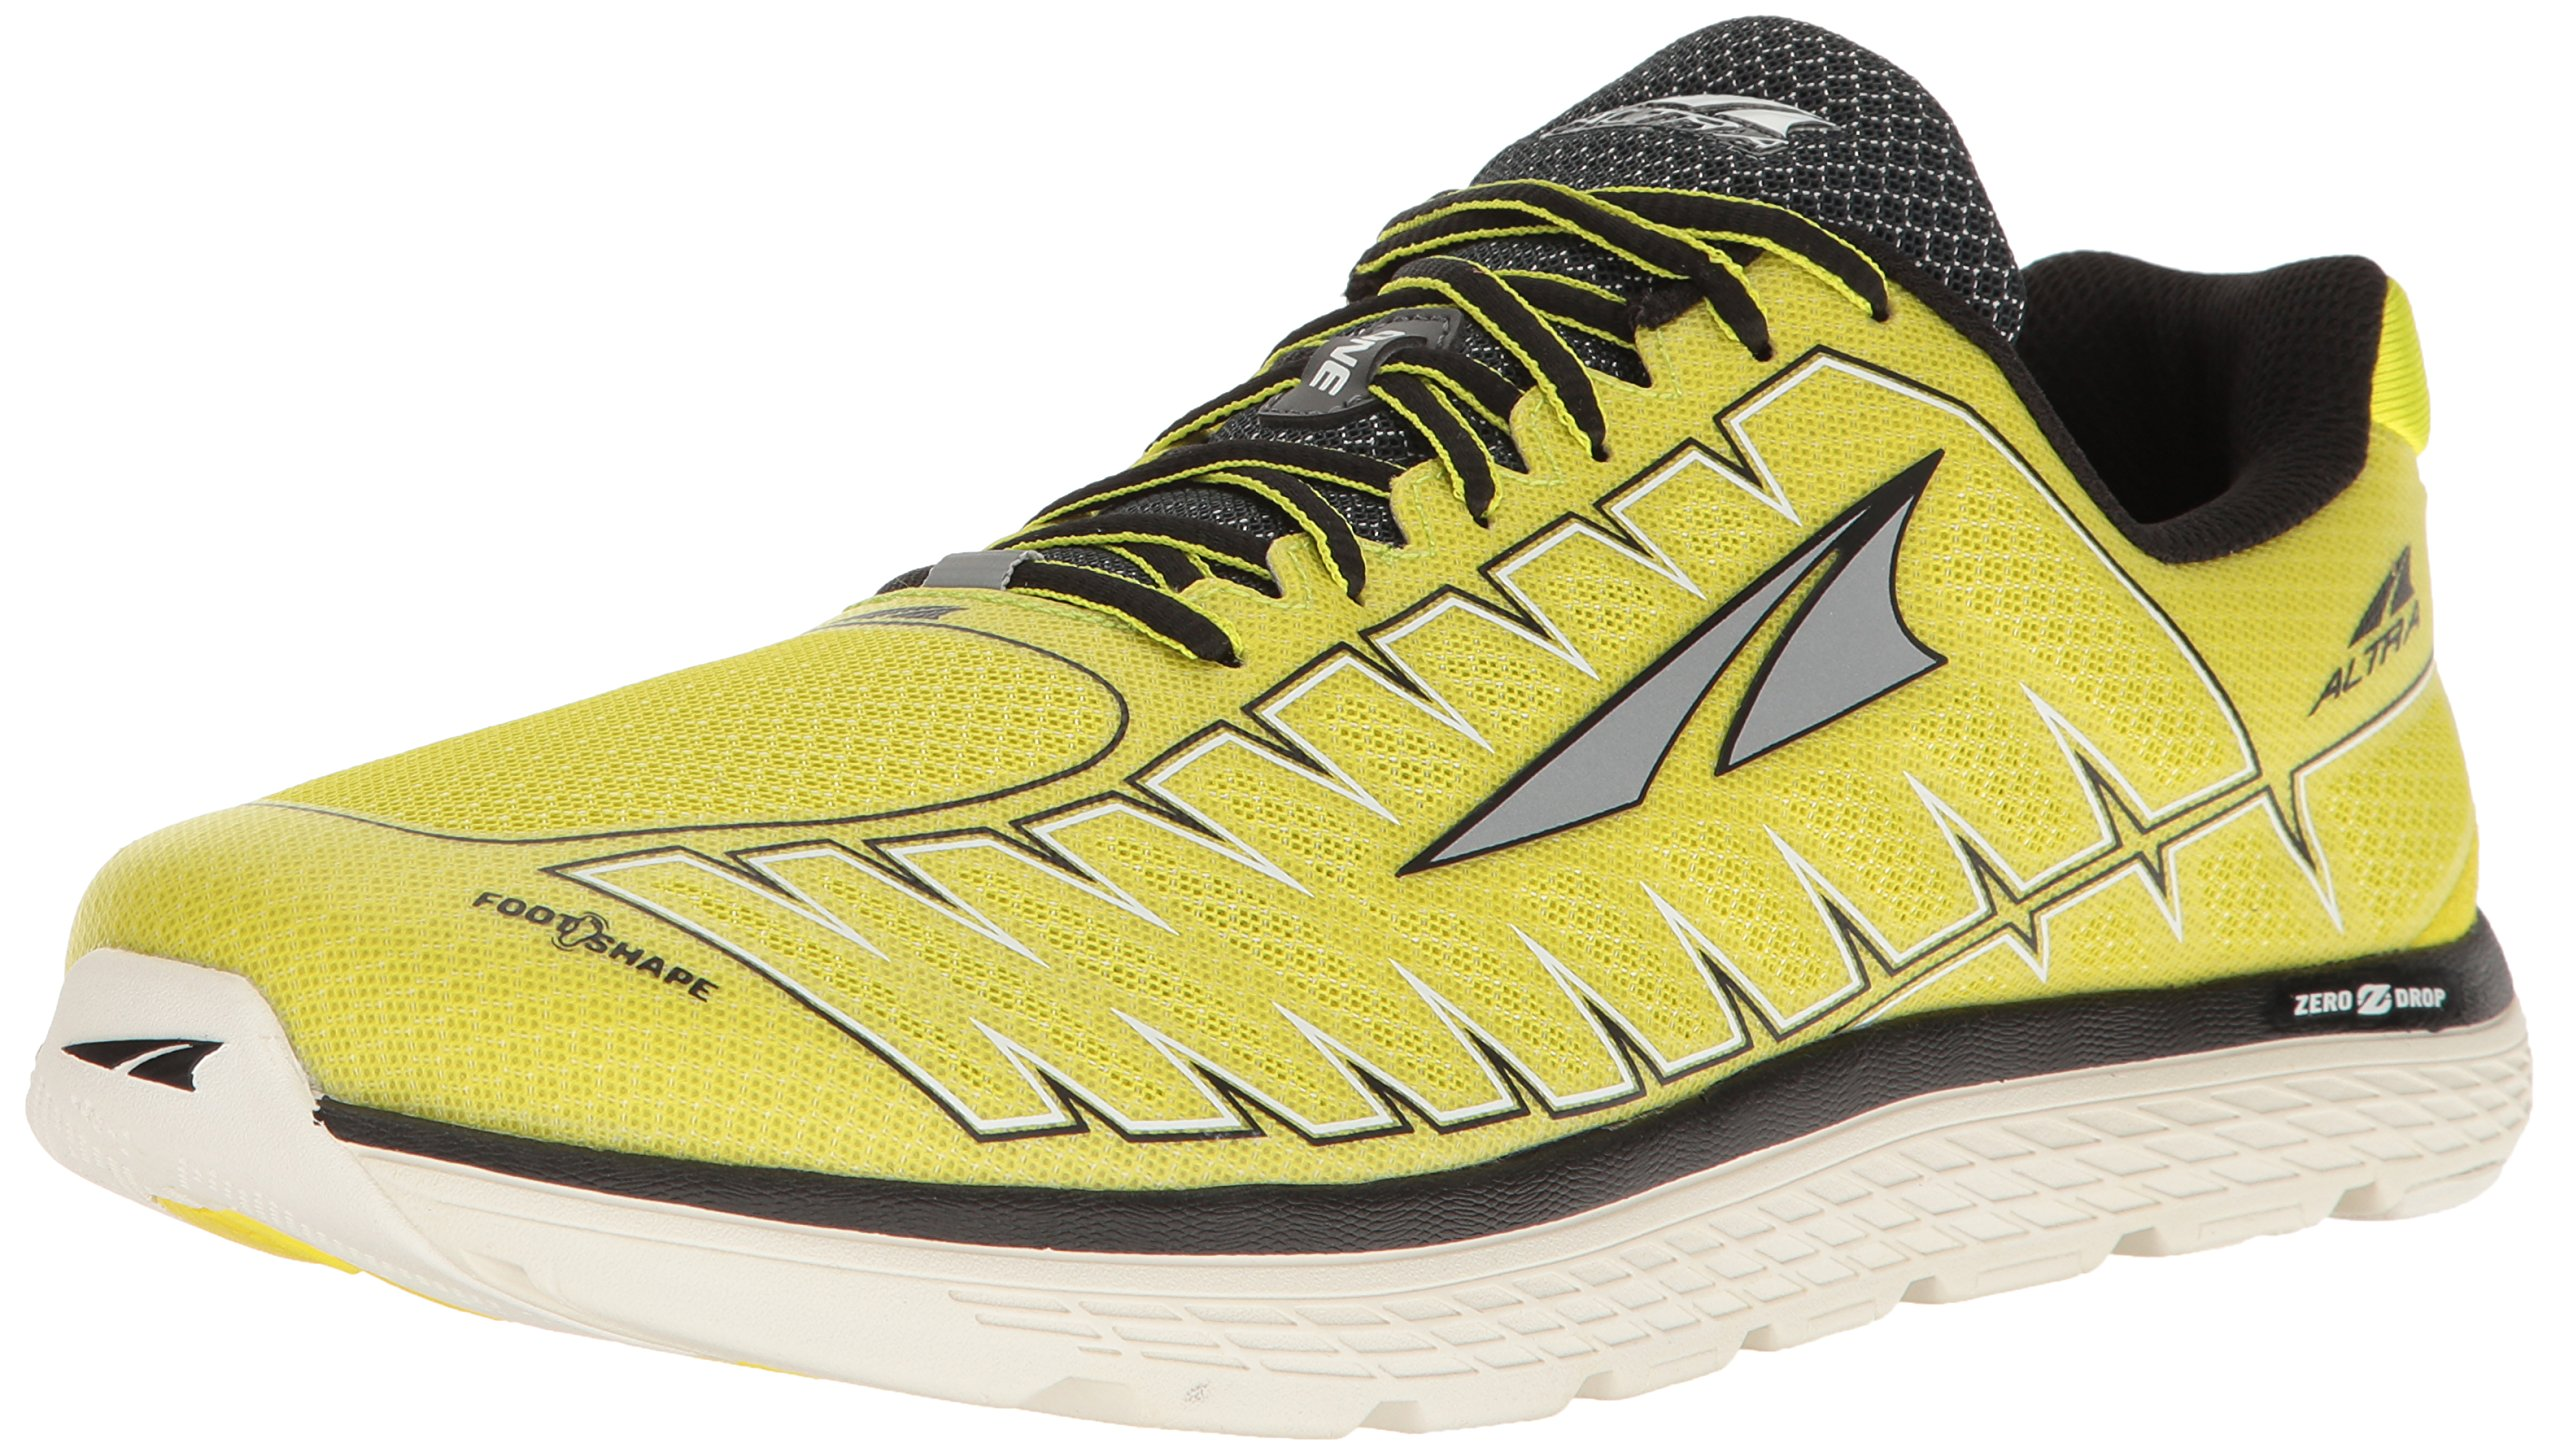 Altra Men's One V3 Running-Shoes, Lime, 12.5 by Altra